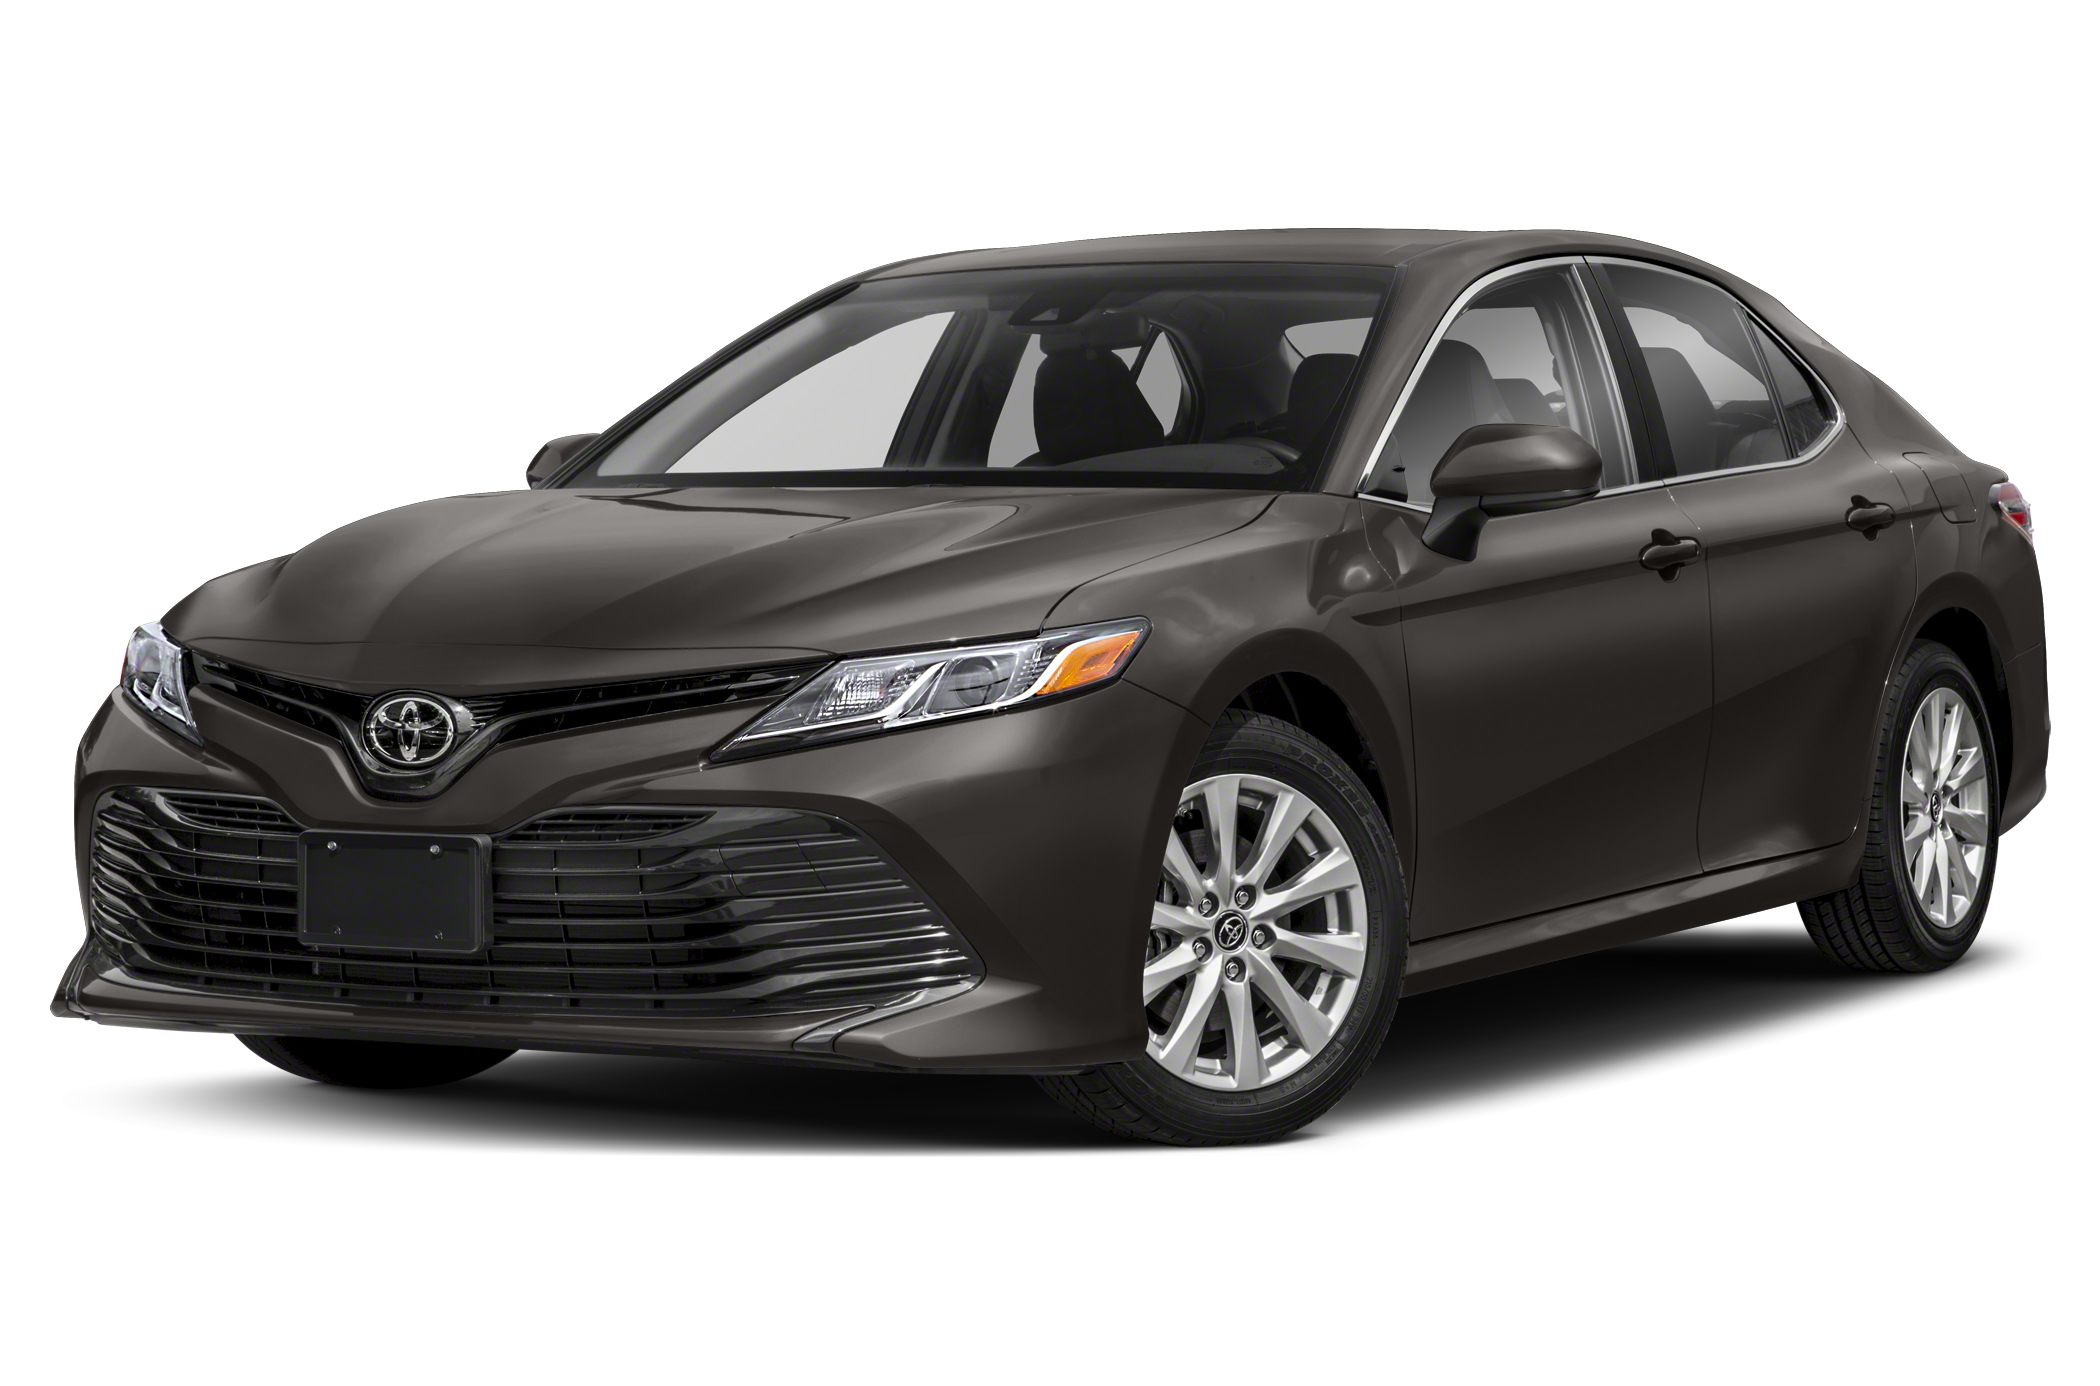 2018 Toyota Camry Le >> 2018 Toyota Camry Le 4dr Sedan Pictures